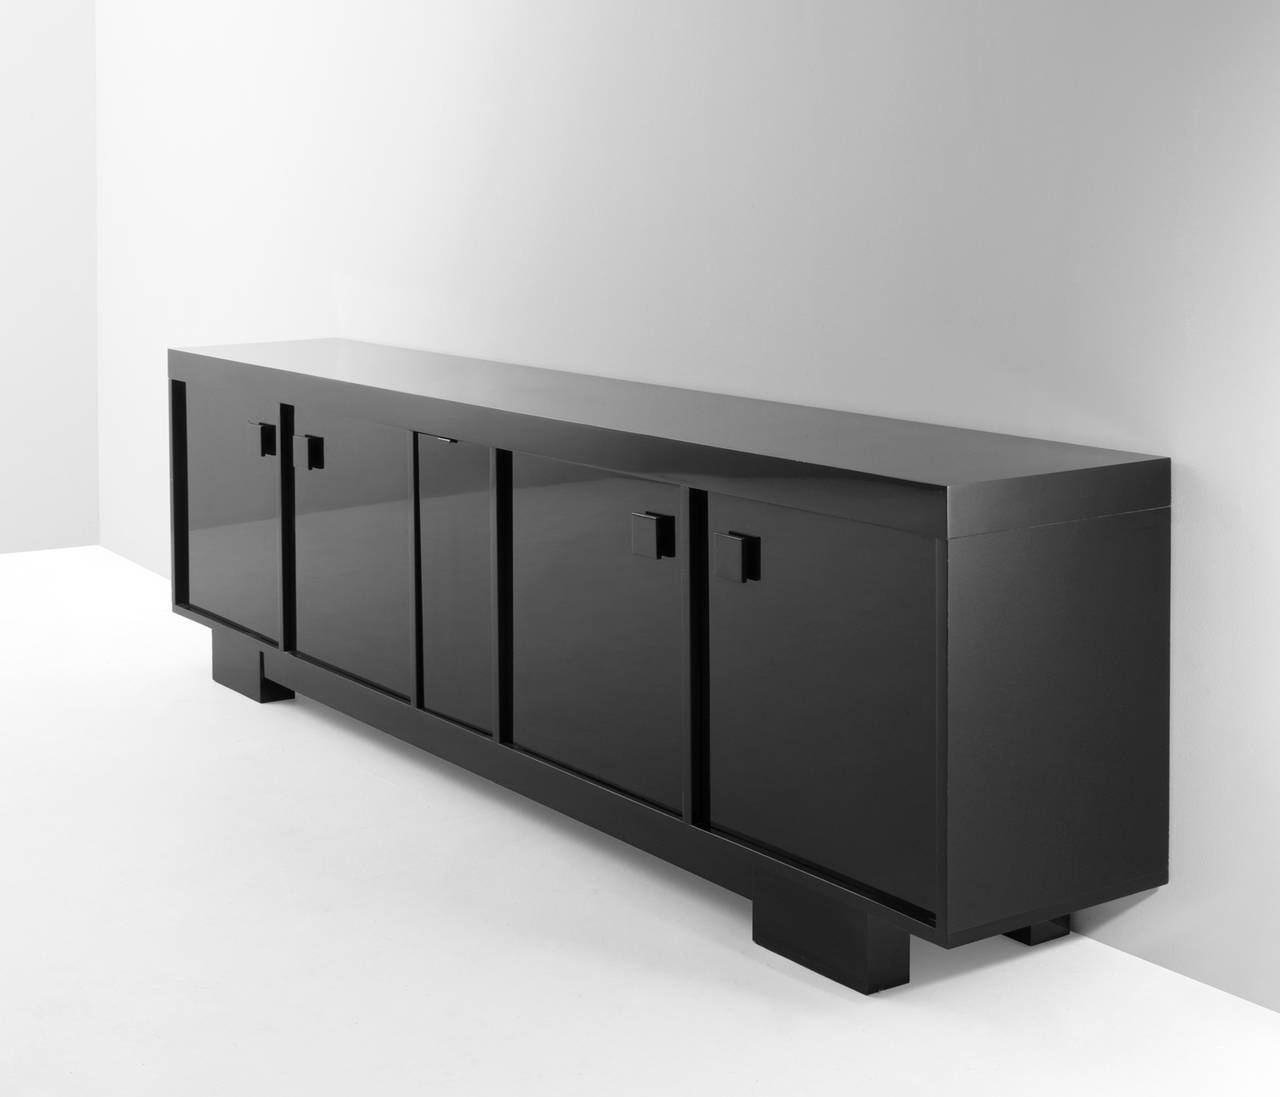 Extreme Long High Gloss Credenzaveranneman For Sale At 1Stdibs pertaining to Black High Gloss Sideboards (Image 10 of 30)